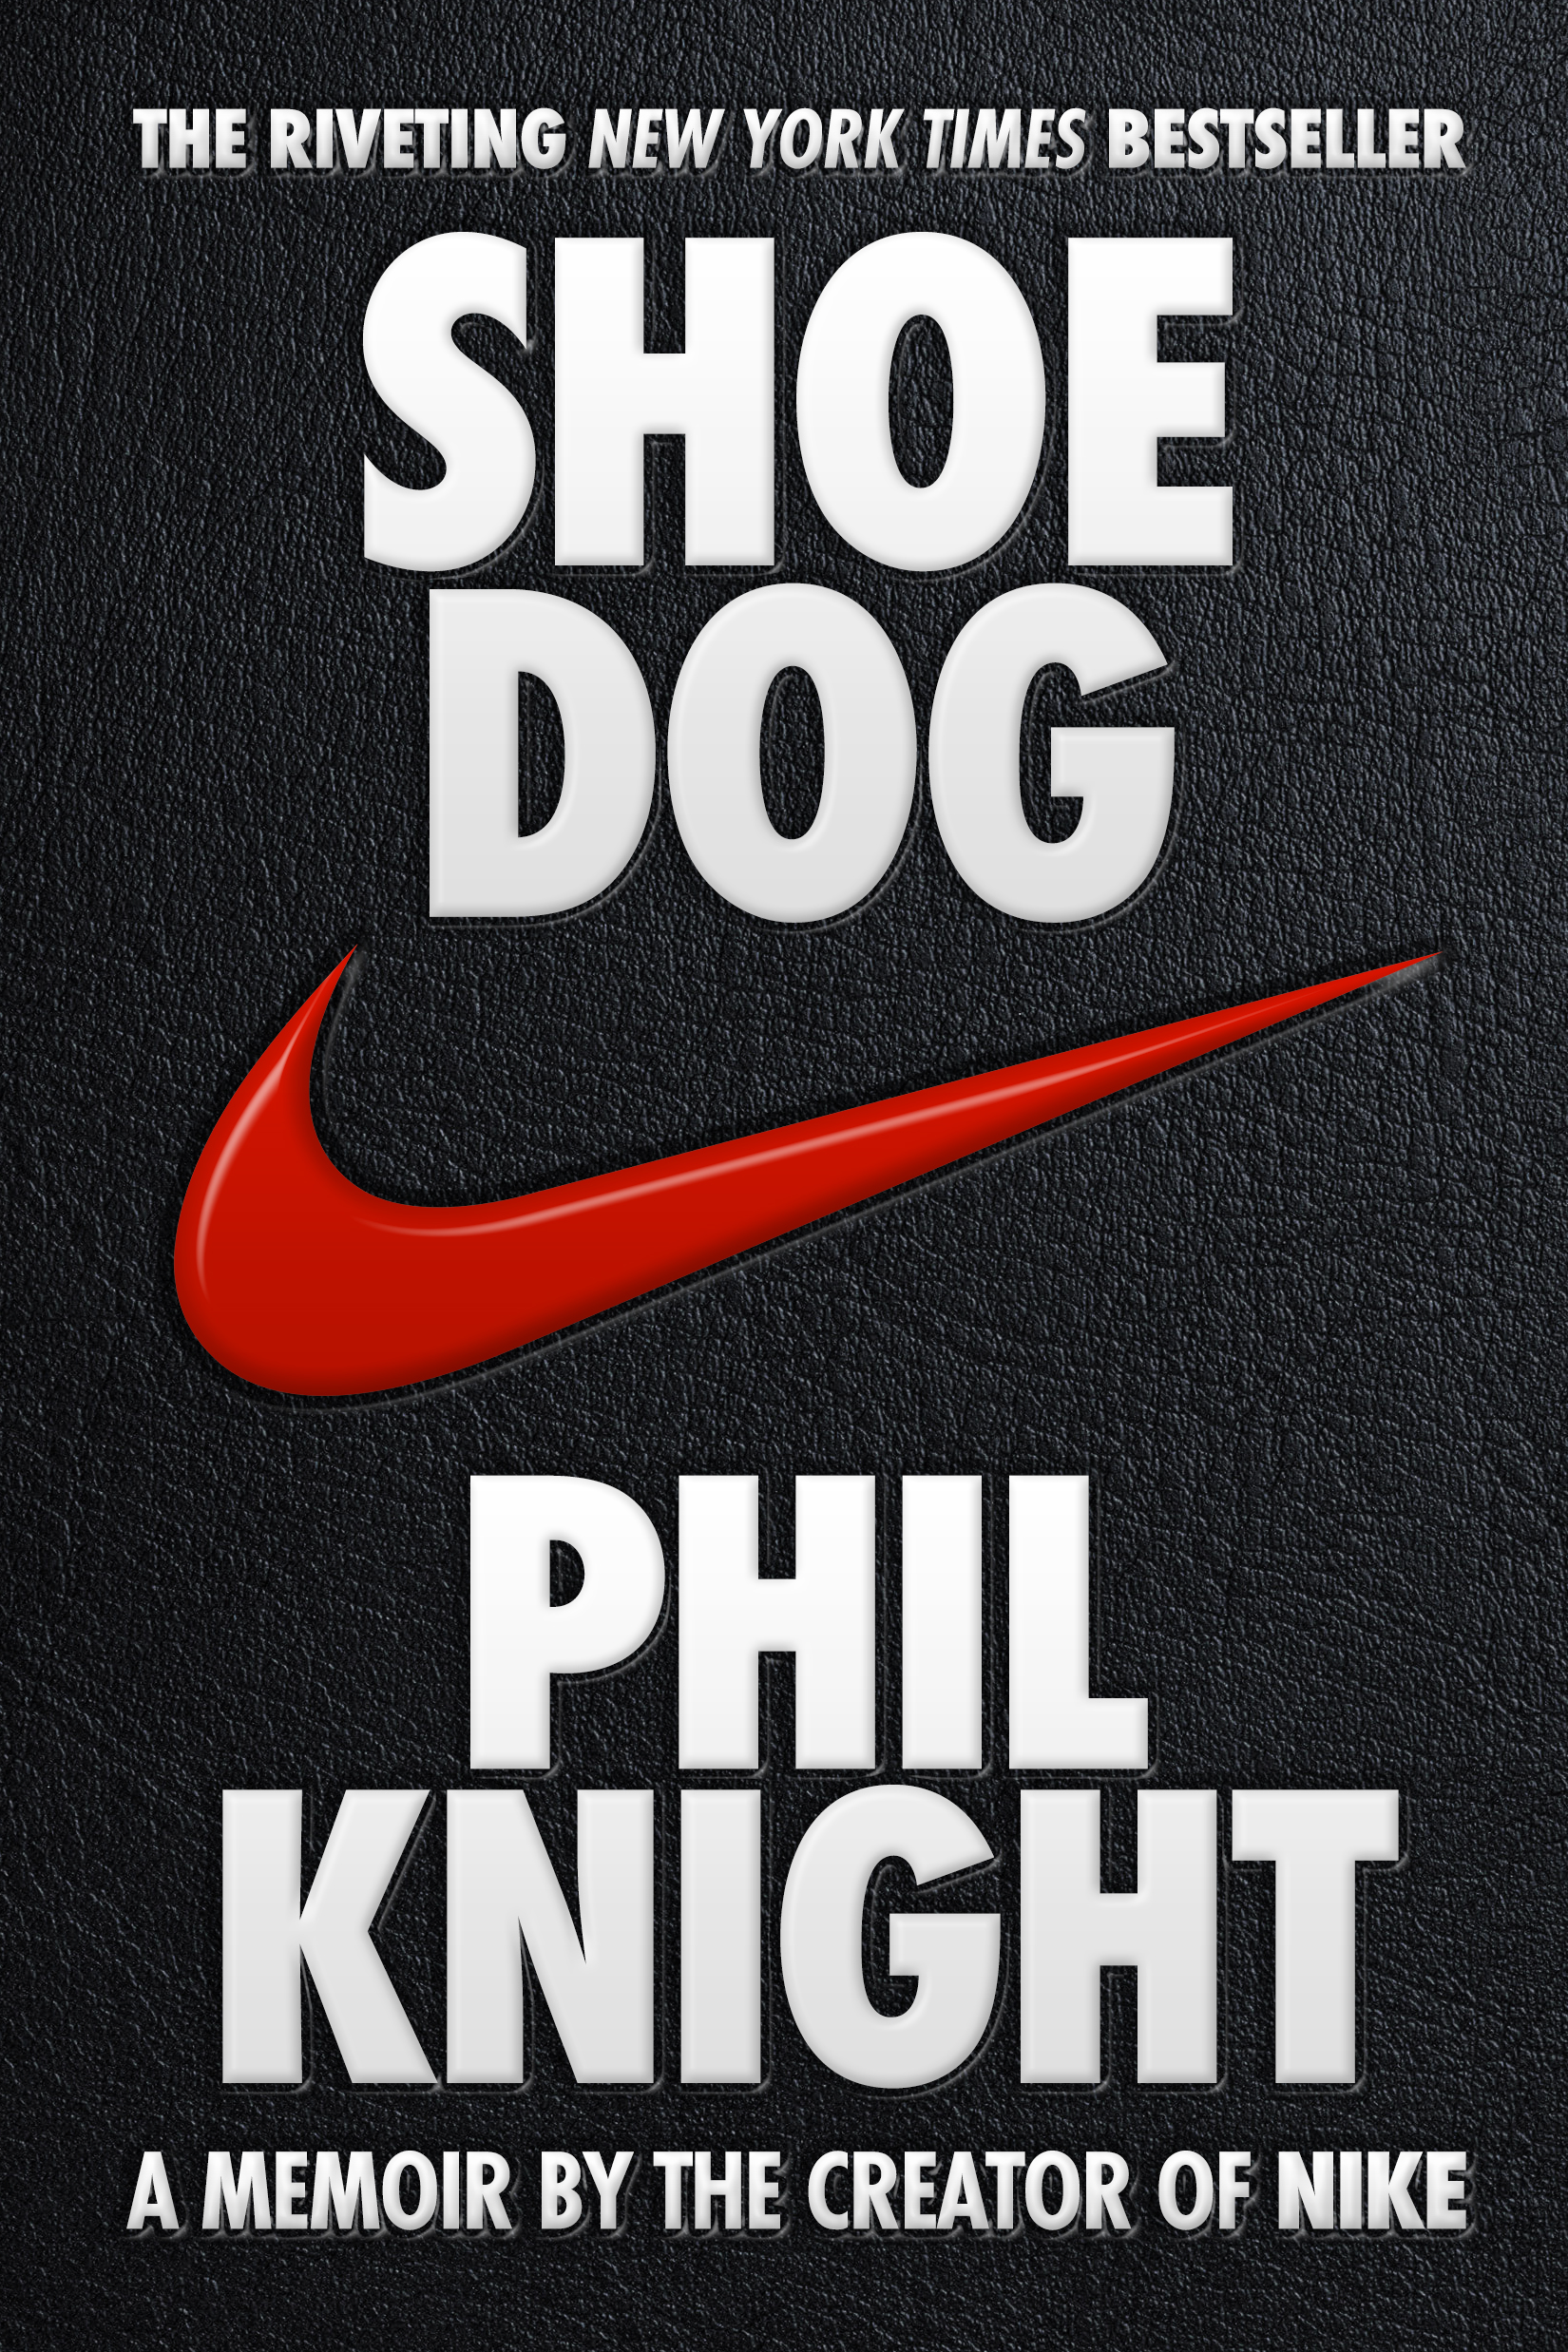 Shoe Dog by Phil Knight Designed by Ben Mautner for One Hour Covers